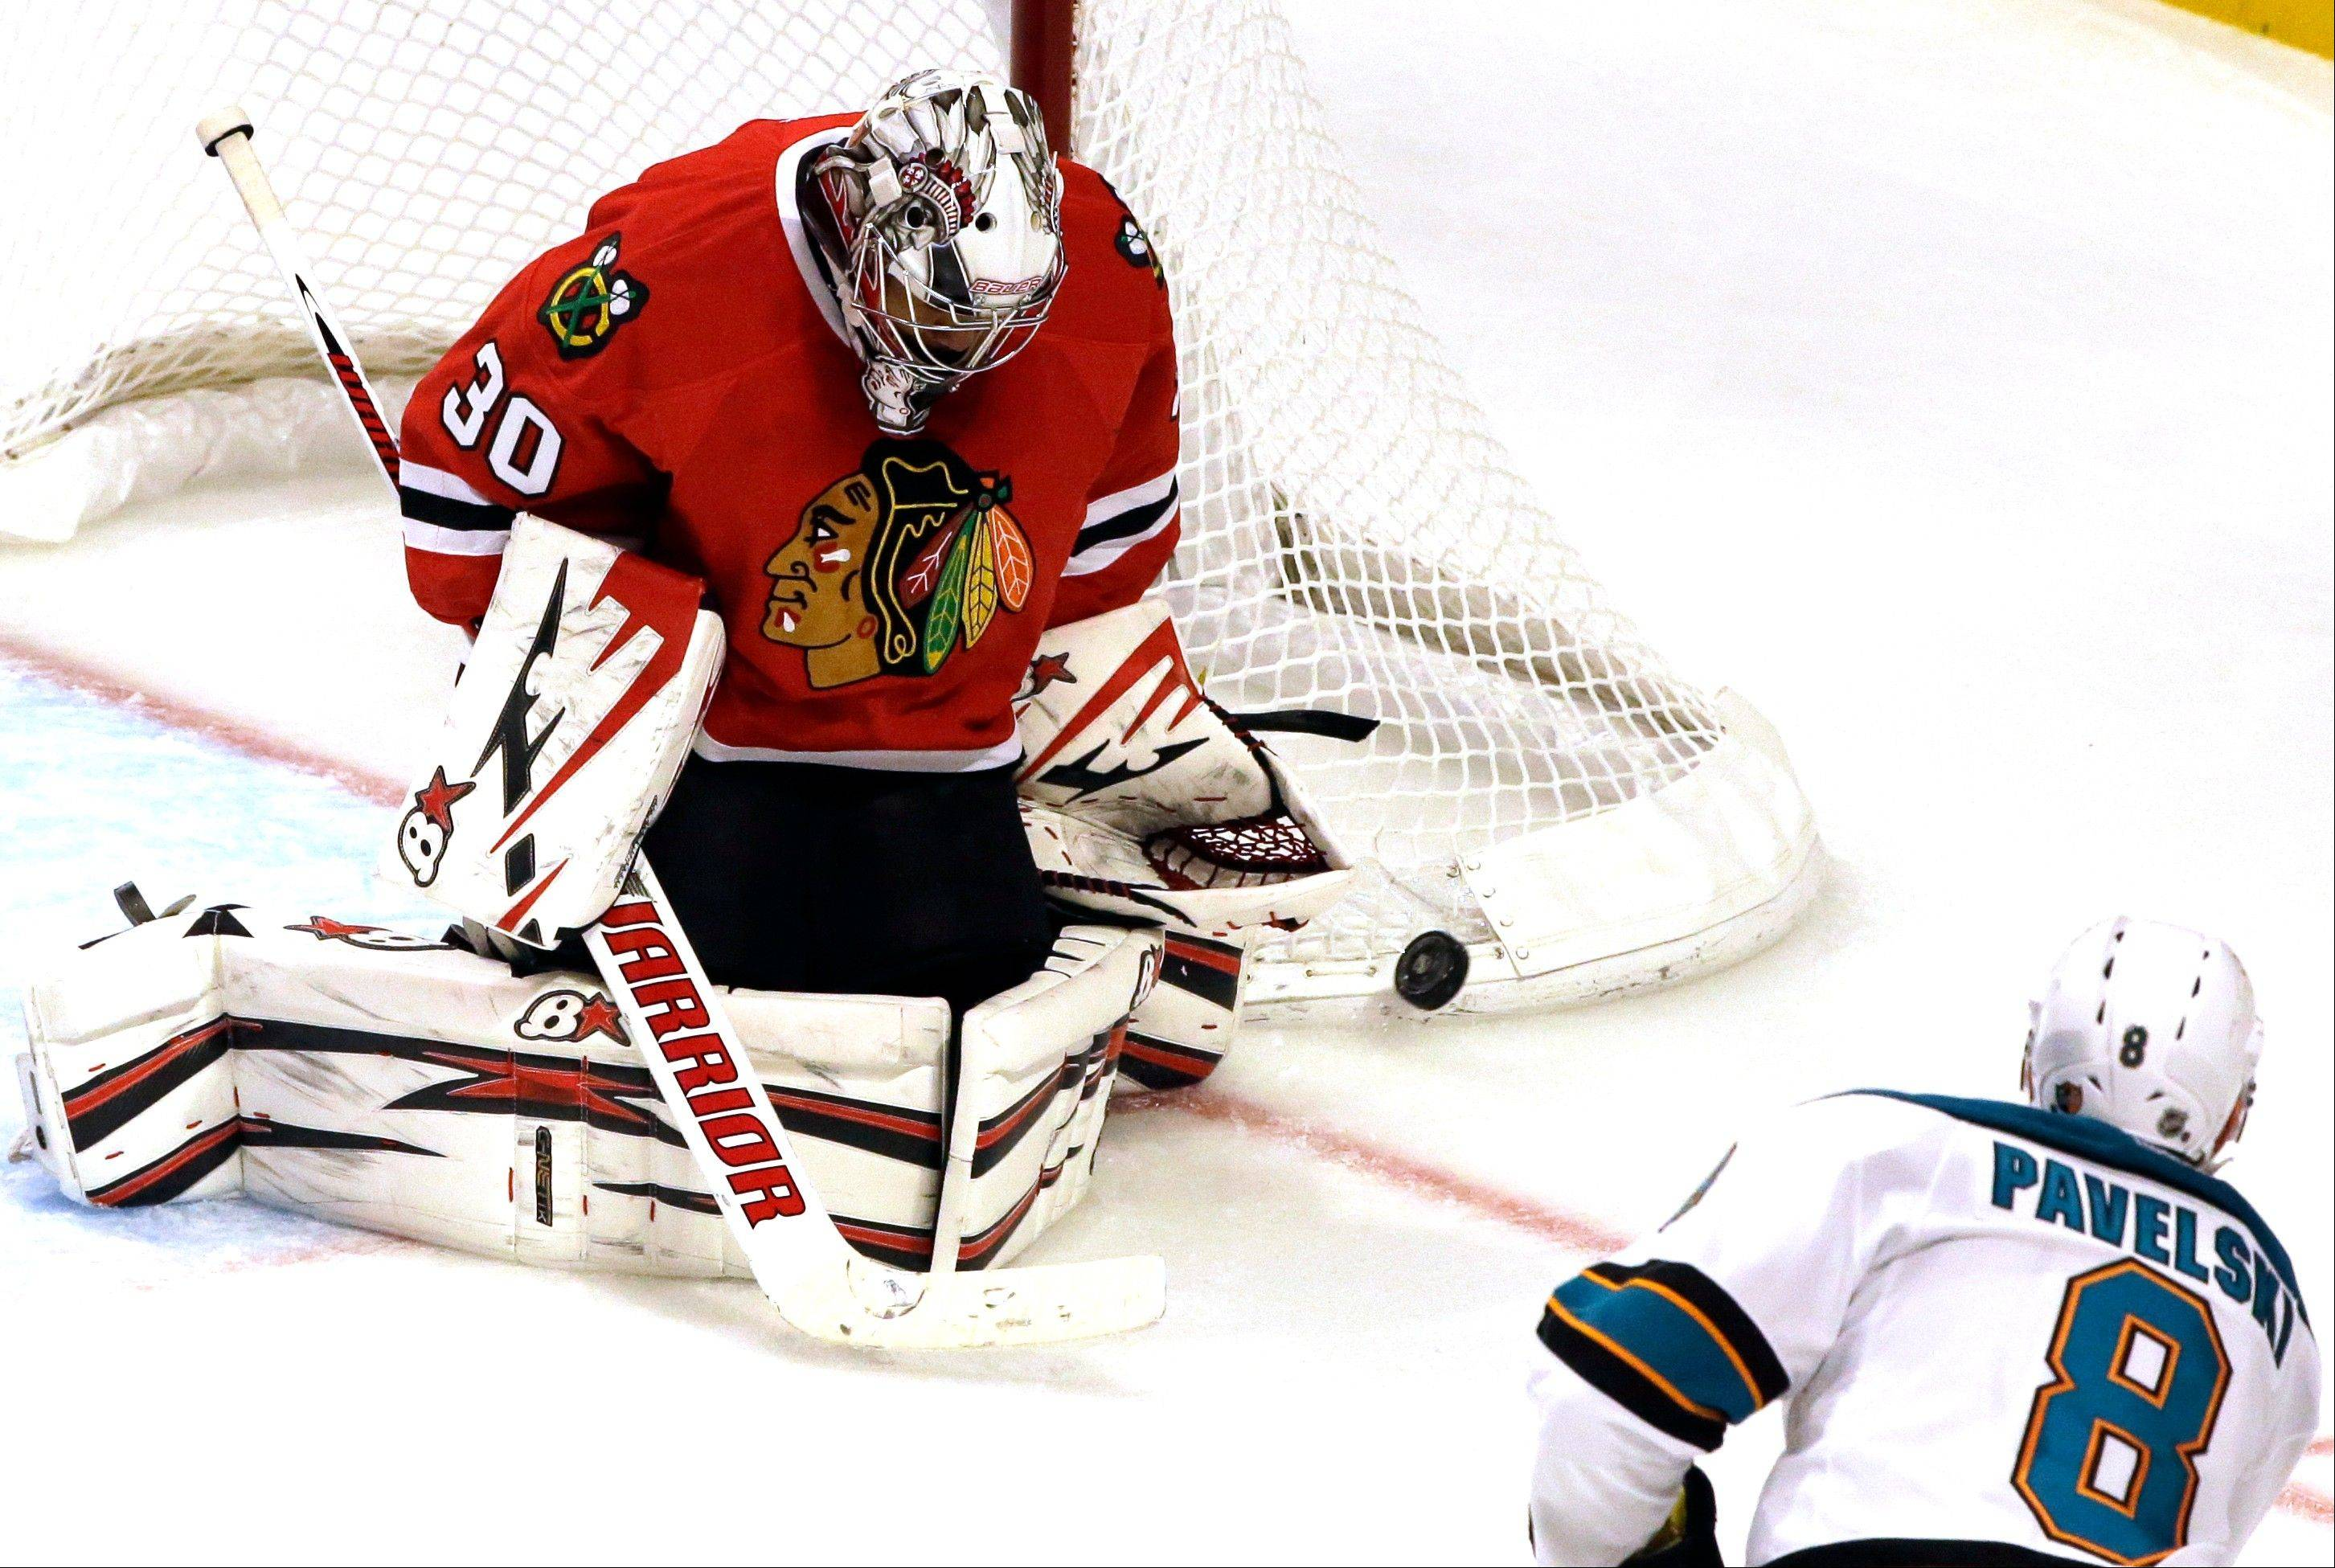 Chicago Blackhawks goalie Ray Emery (30) blocks a shot by San Jose Sharks' Joe Pavelski (8) during the third period of an NHL hockey game in Chicago, Friday, Feb. 22, 2013. The Blackhawks won 2-1.